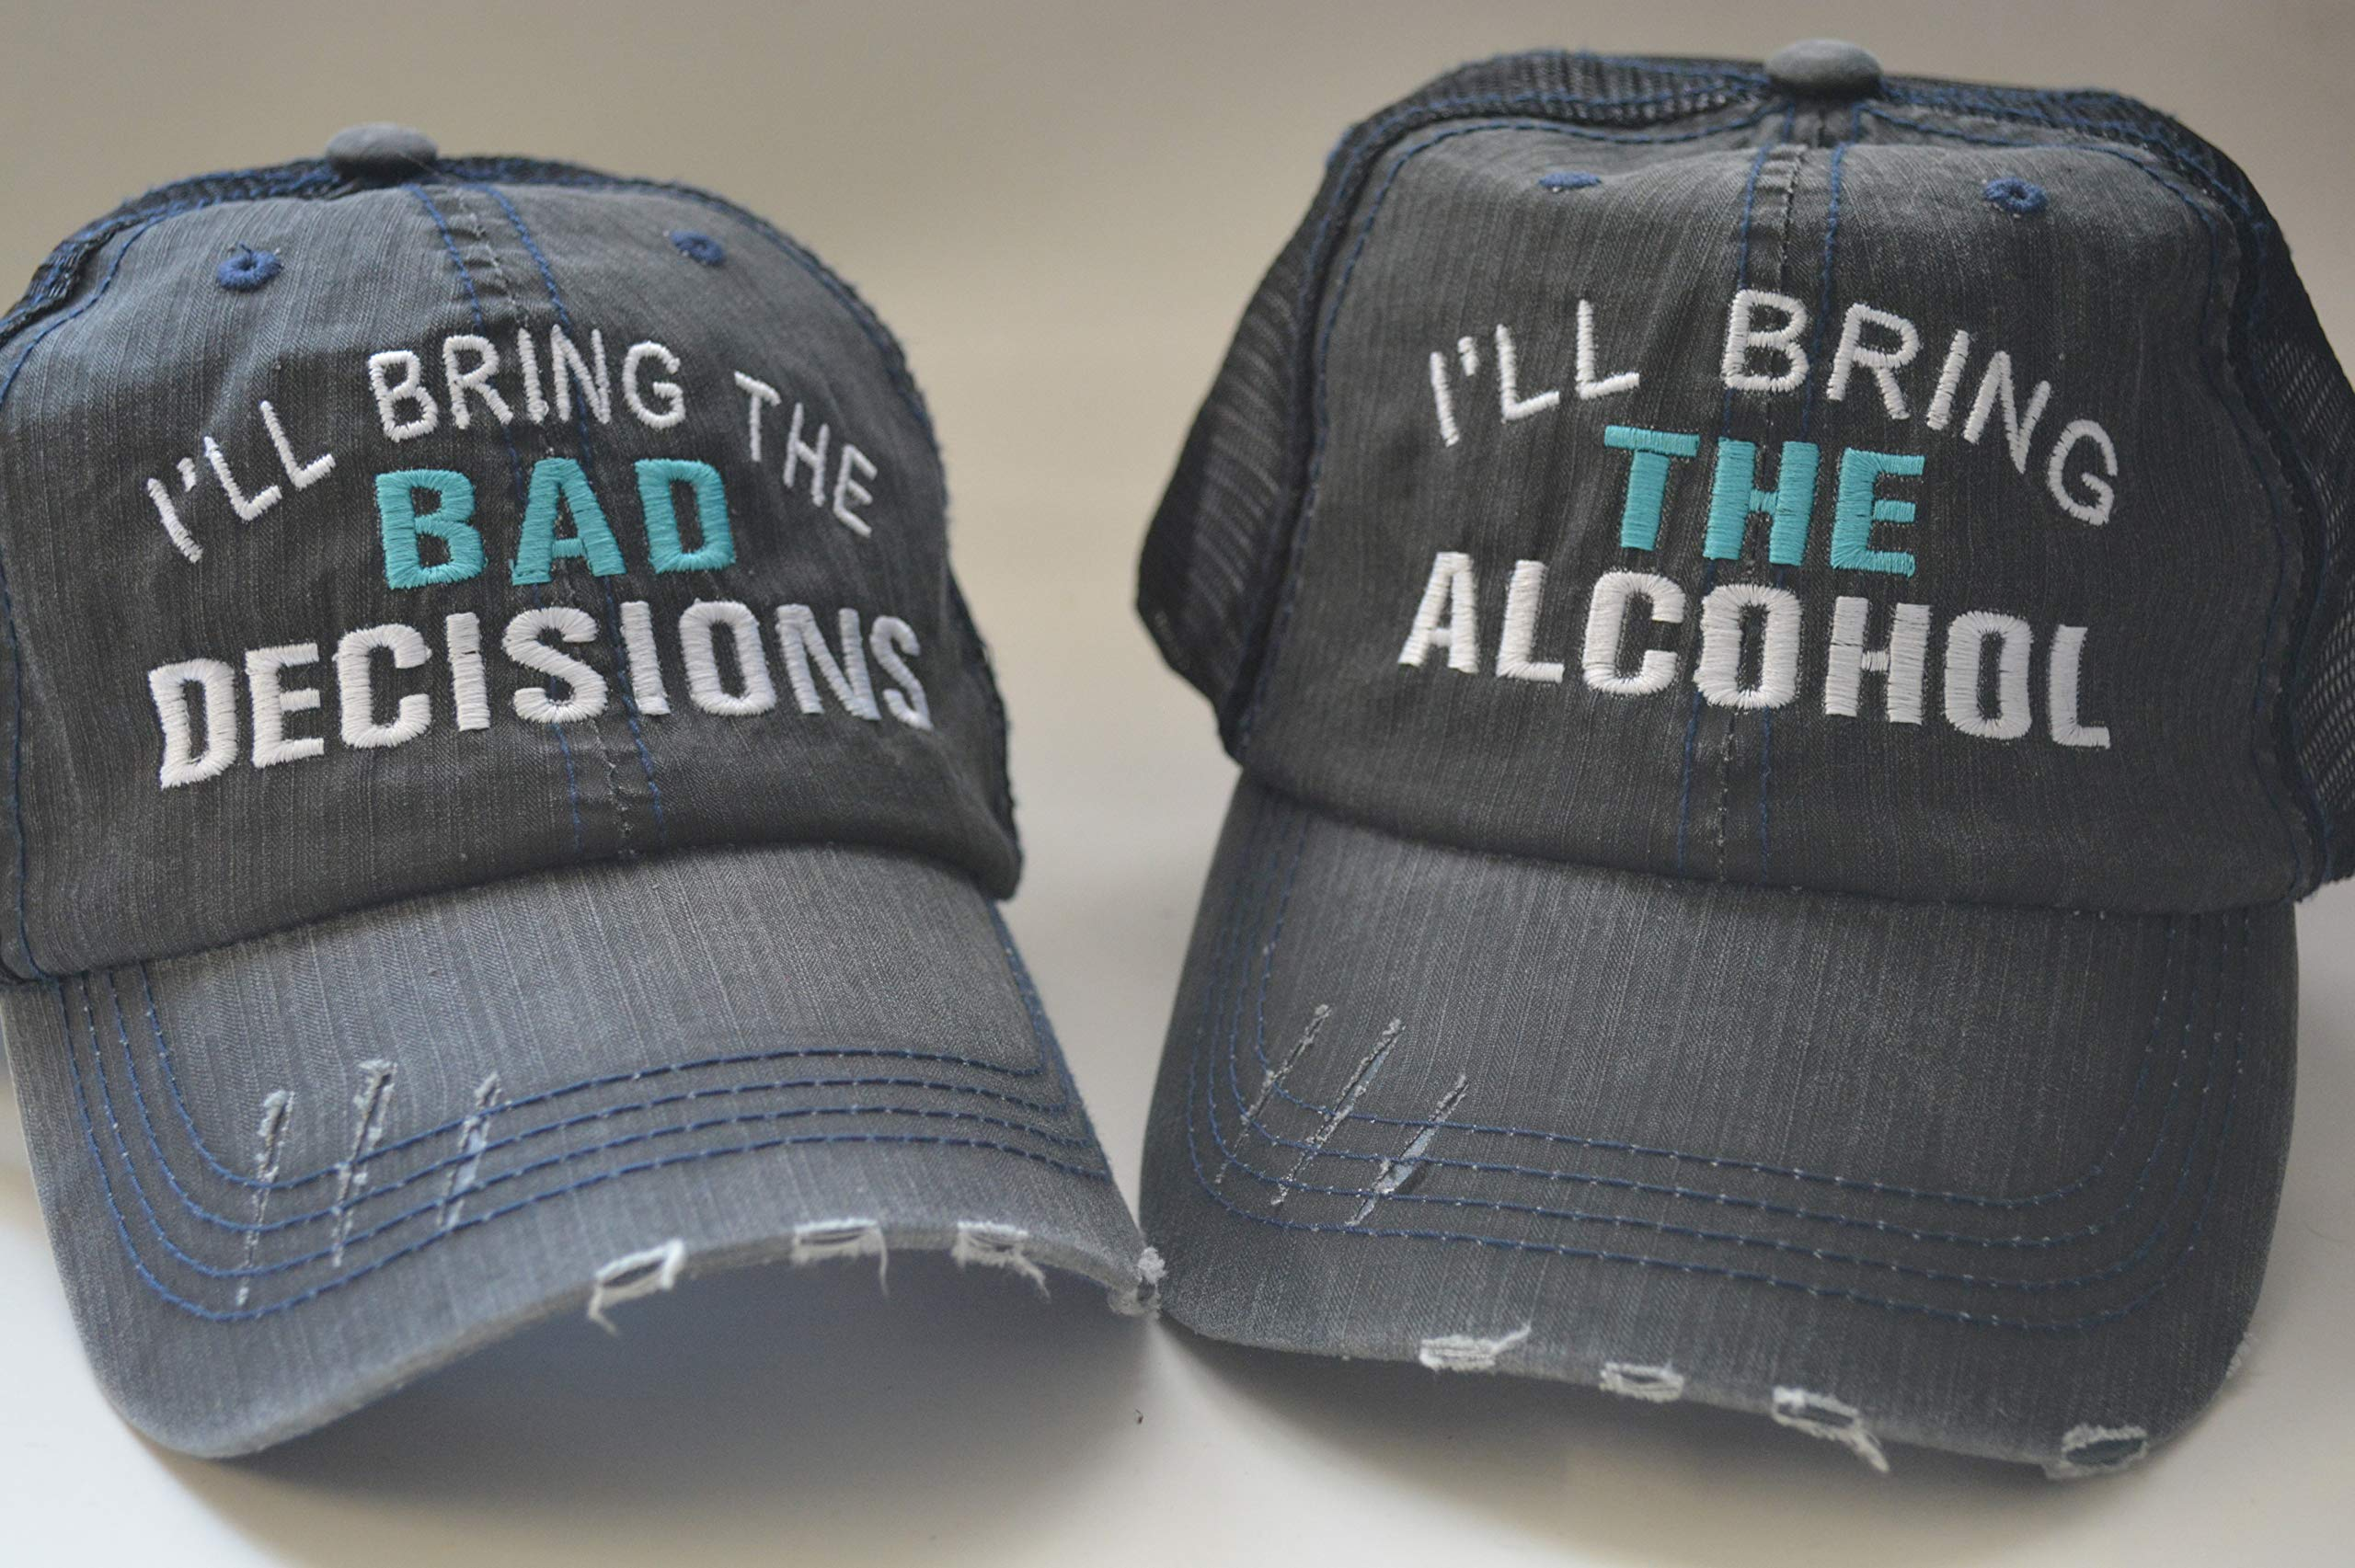 I'll Bring The Alcohol I'll bring the bad decisions Baseball Hats Set of 2/ Distressed Trucker Hats/Best Friend Gift Party/Monogram cap for women/girl